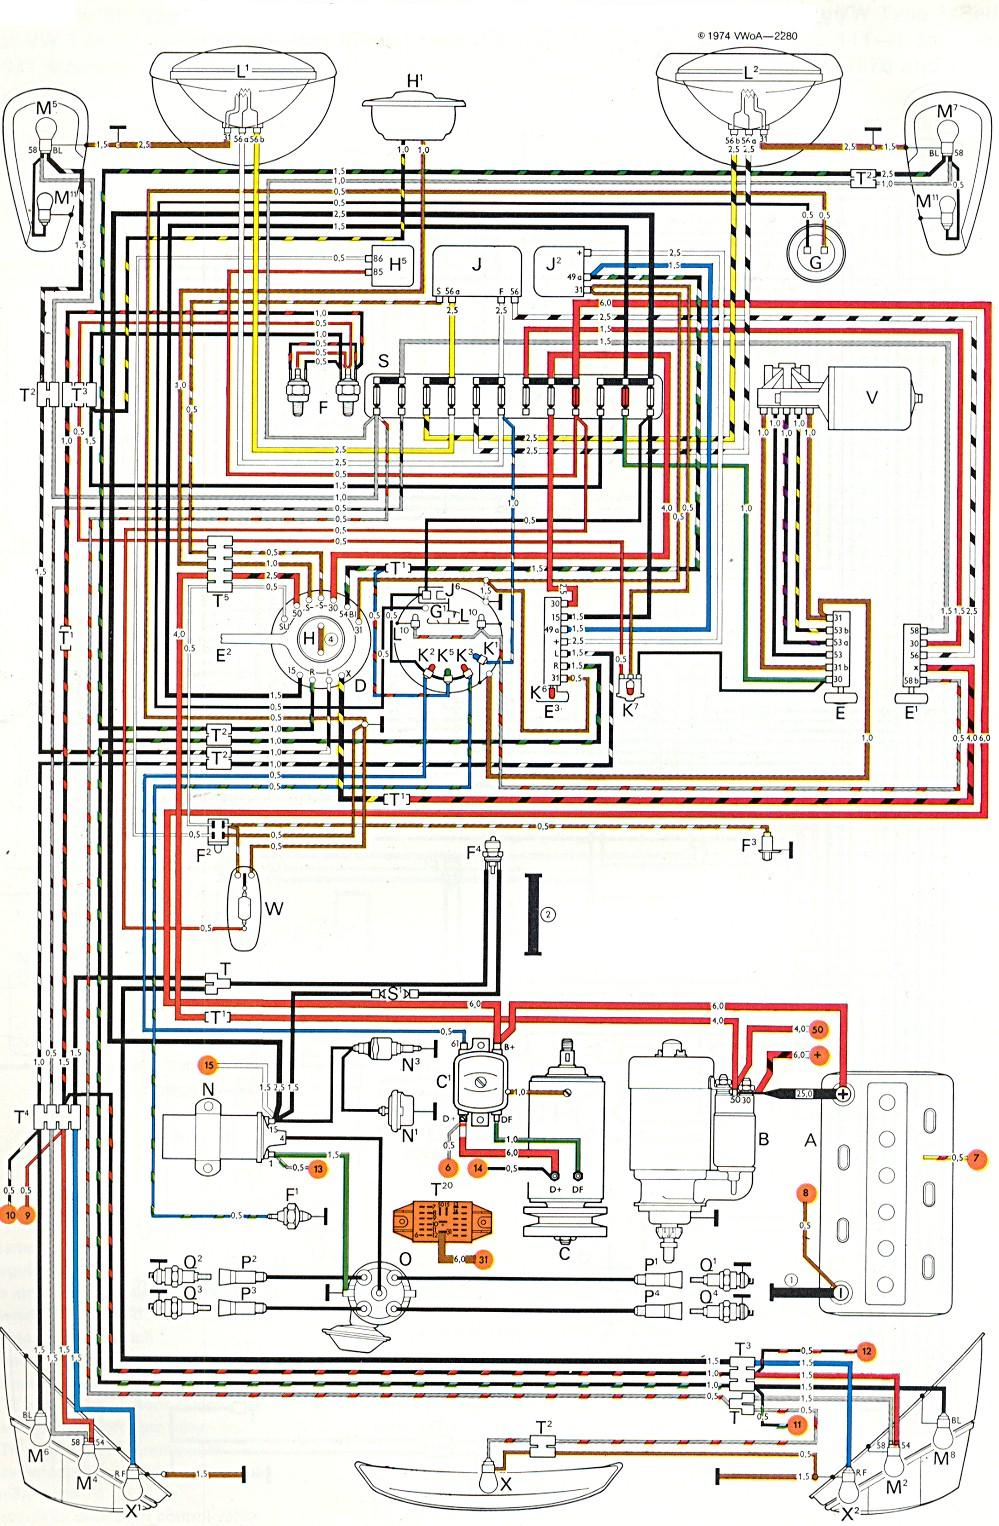 1971 VW Beetle Wiring Diagram on the site for 1966 vw beetle owners and fans